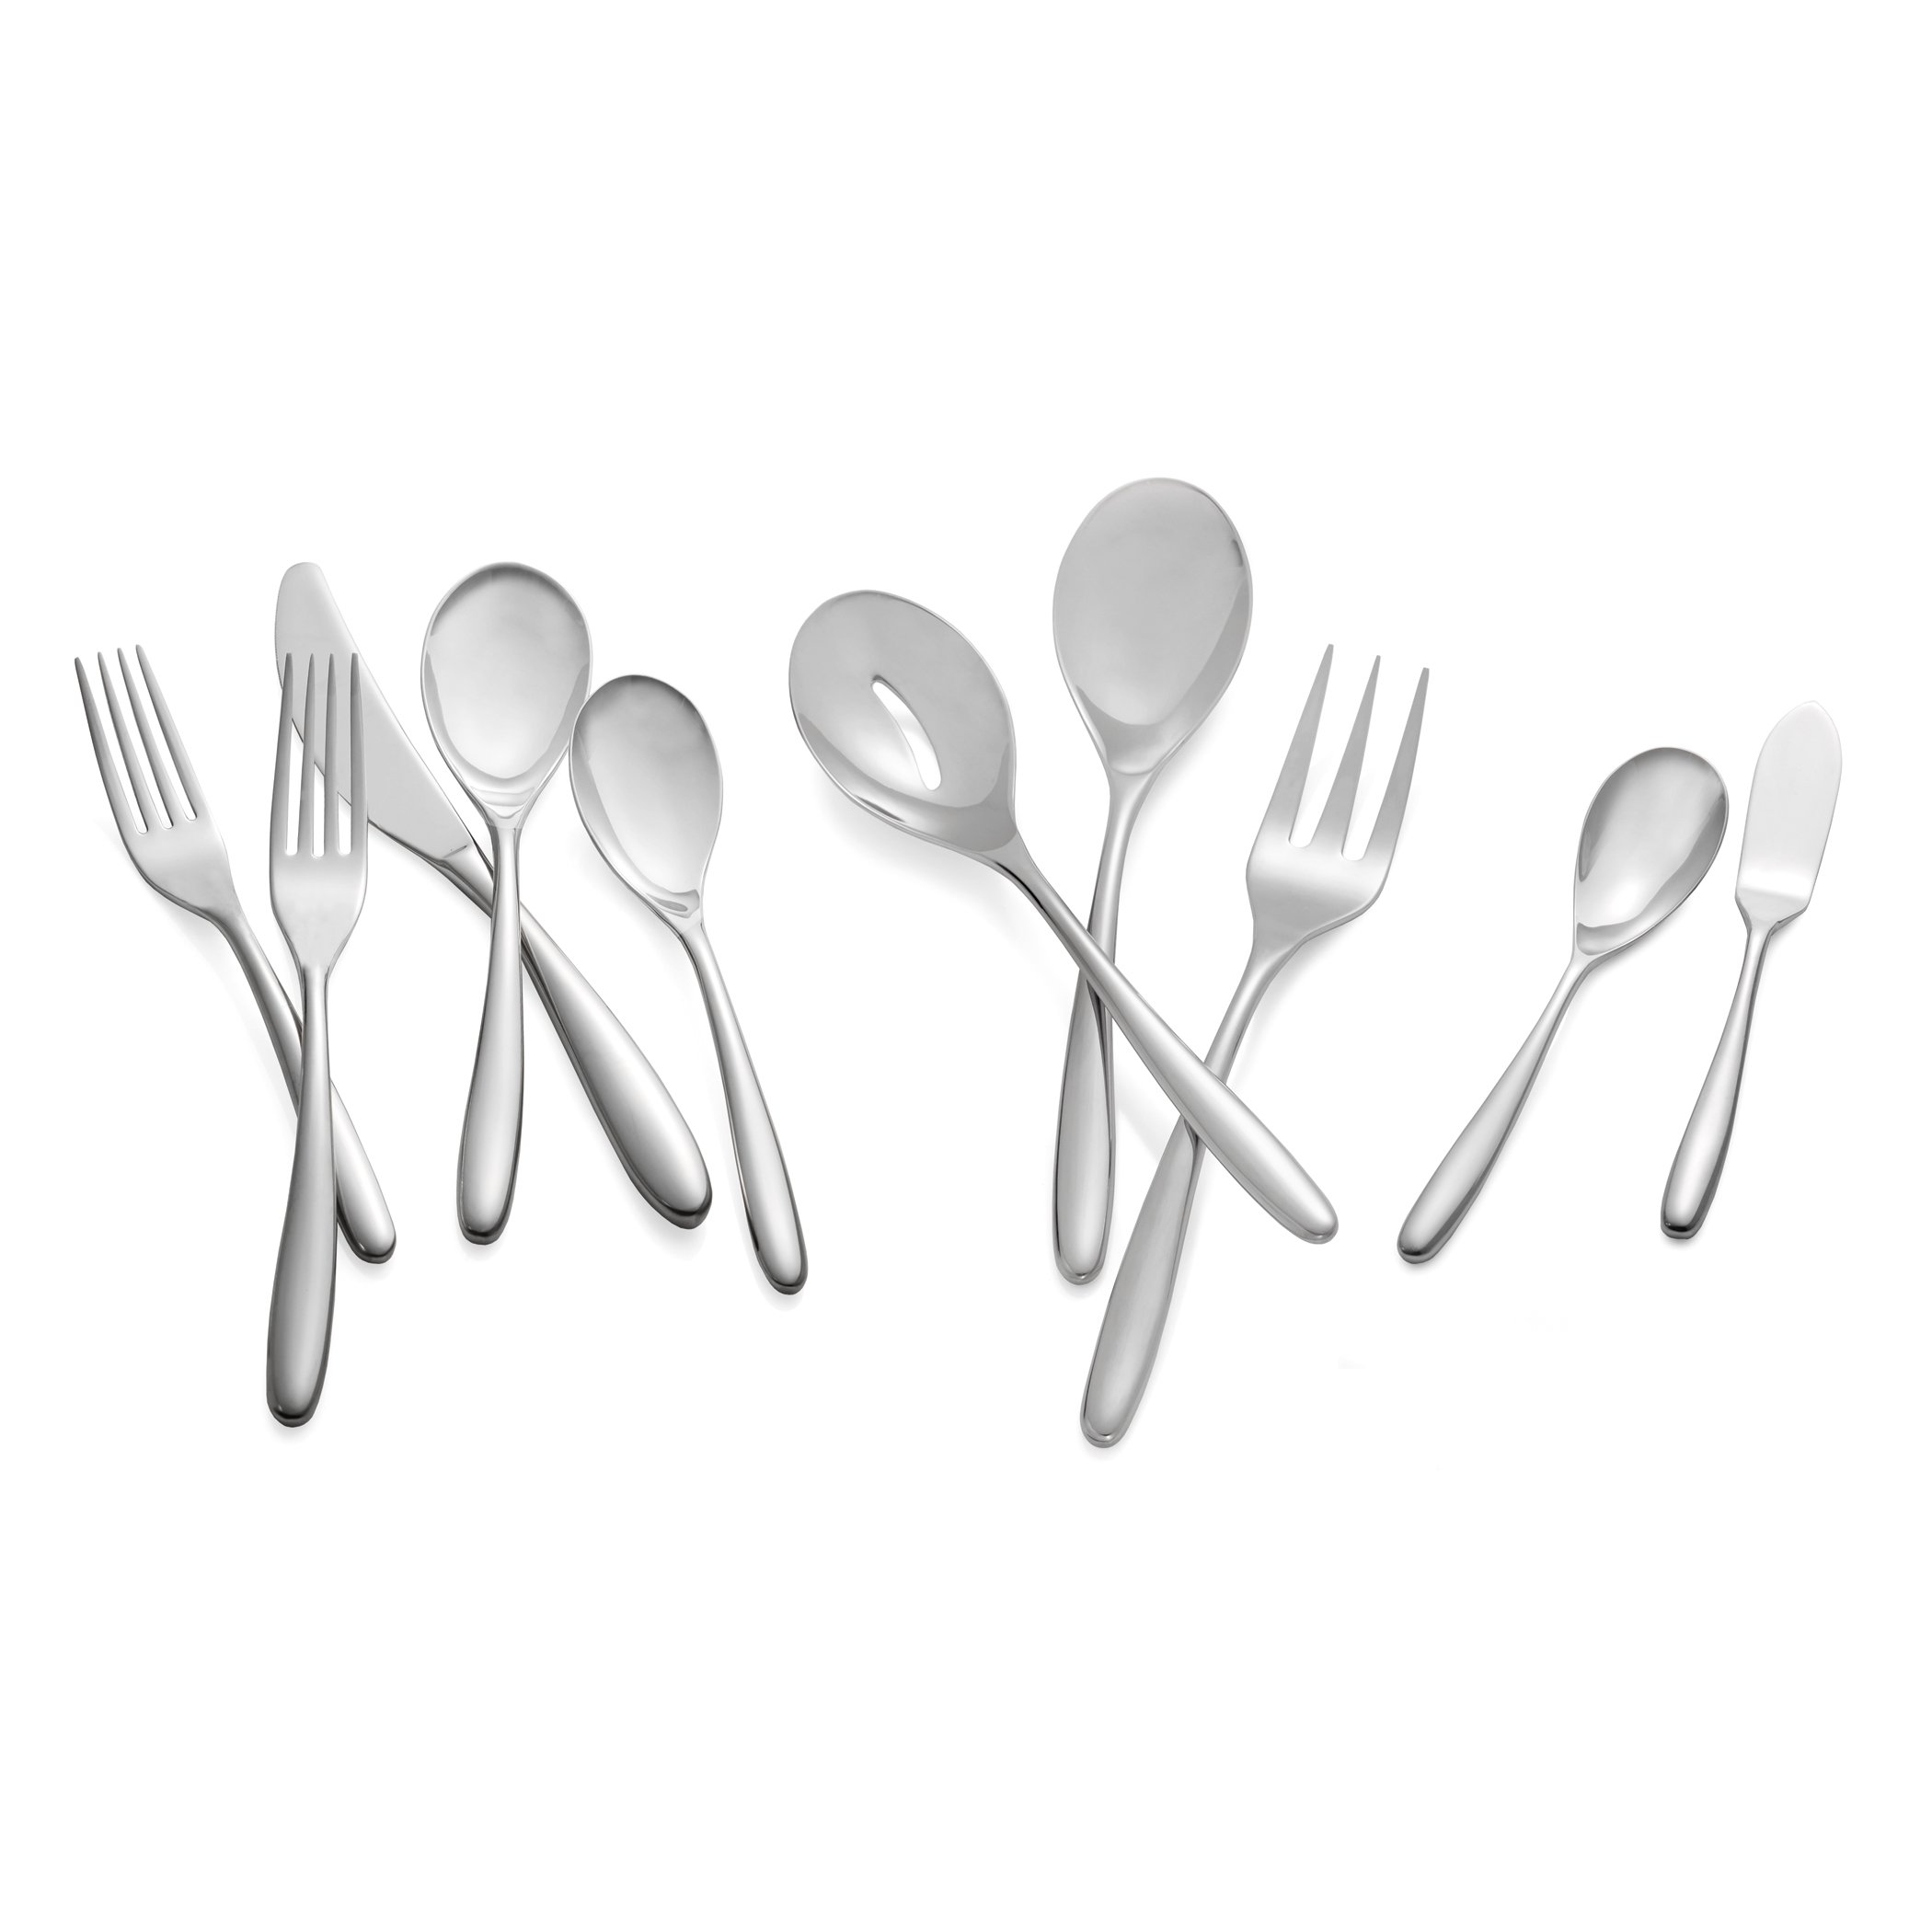 Nambè Bend Stainless Steel 45-Piece Flatware Set, Service for 8